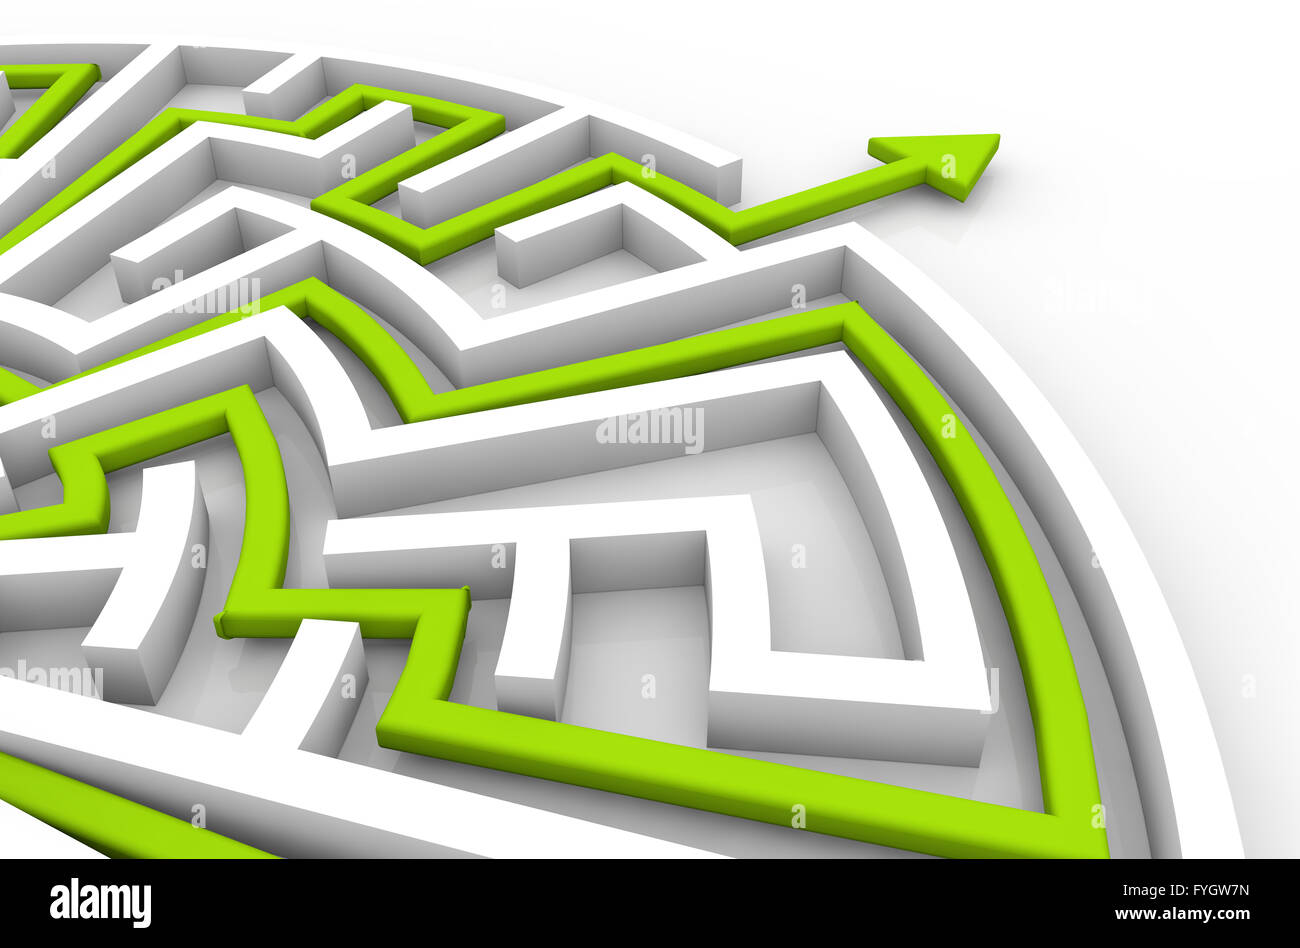 challenge success concept: labyrinth solution - Stock Image